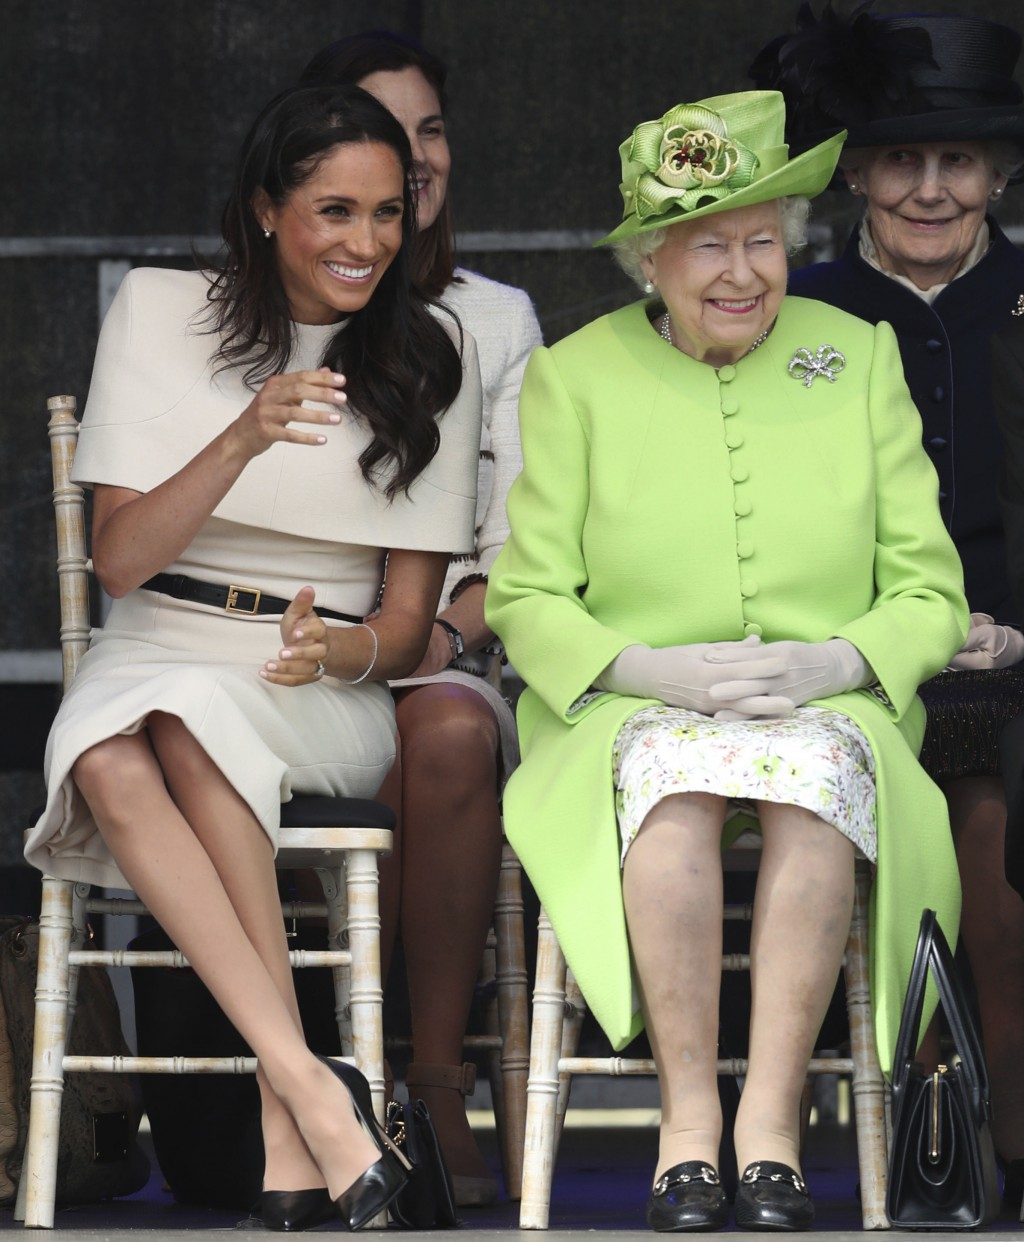 Britain's Queen Elizabeth II and Meghan, the Duchess of Sussex, left, attend the opening of the new Mersey Gateway Bridge, in Widnes, north west Engla